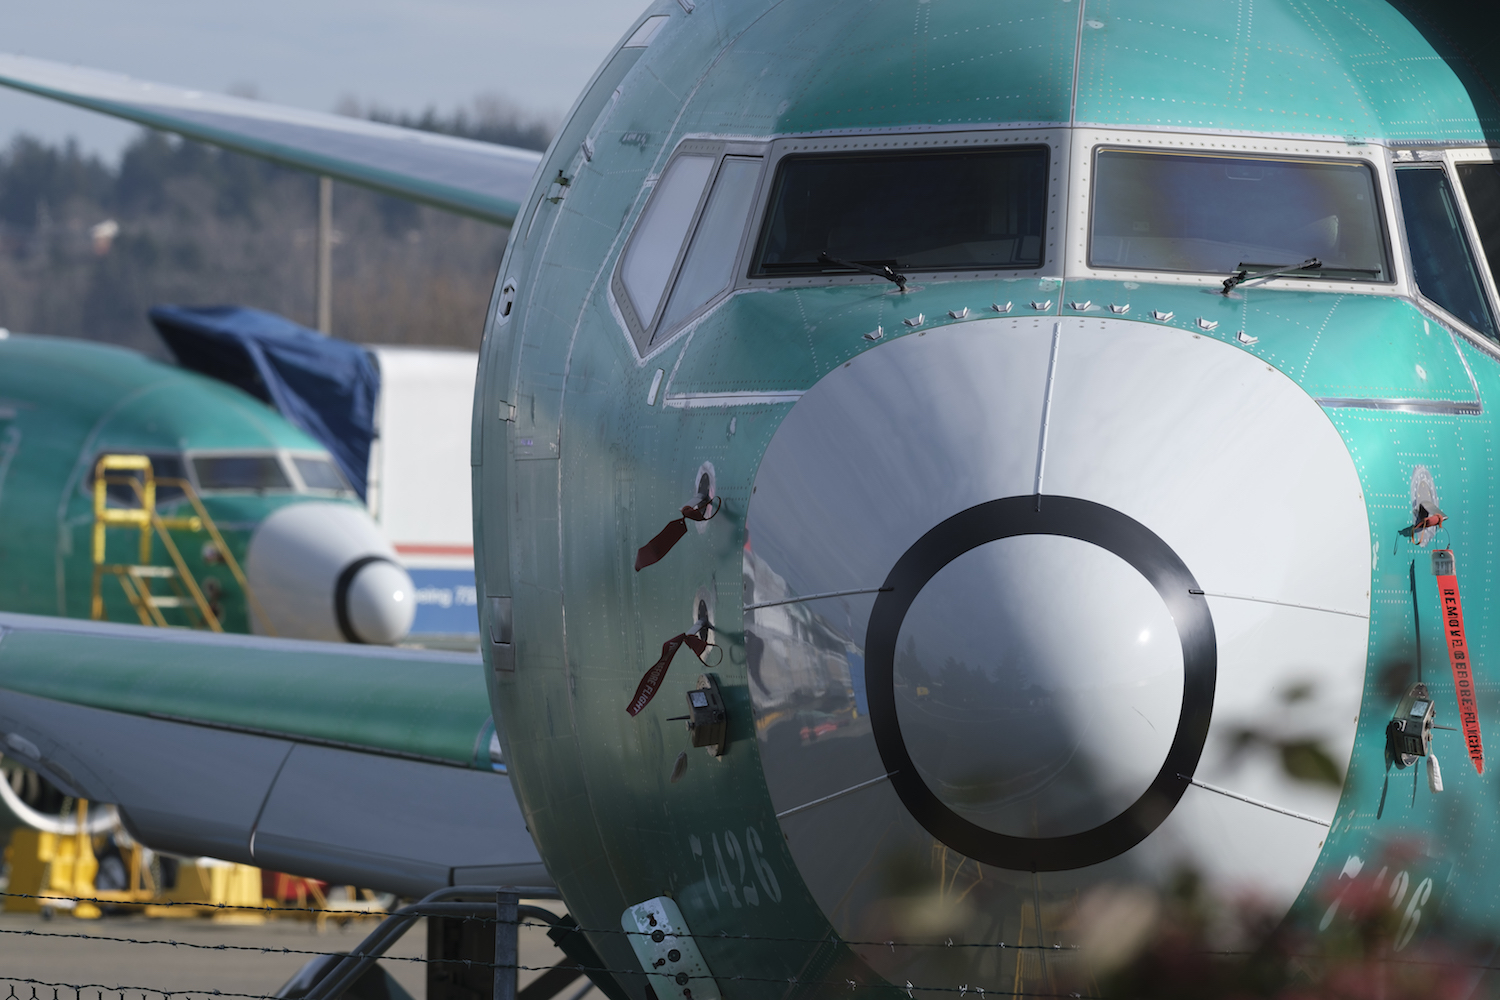 Security Brief: Boeing 737 Safety Systems Under Scrutiny